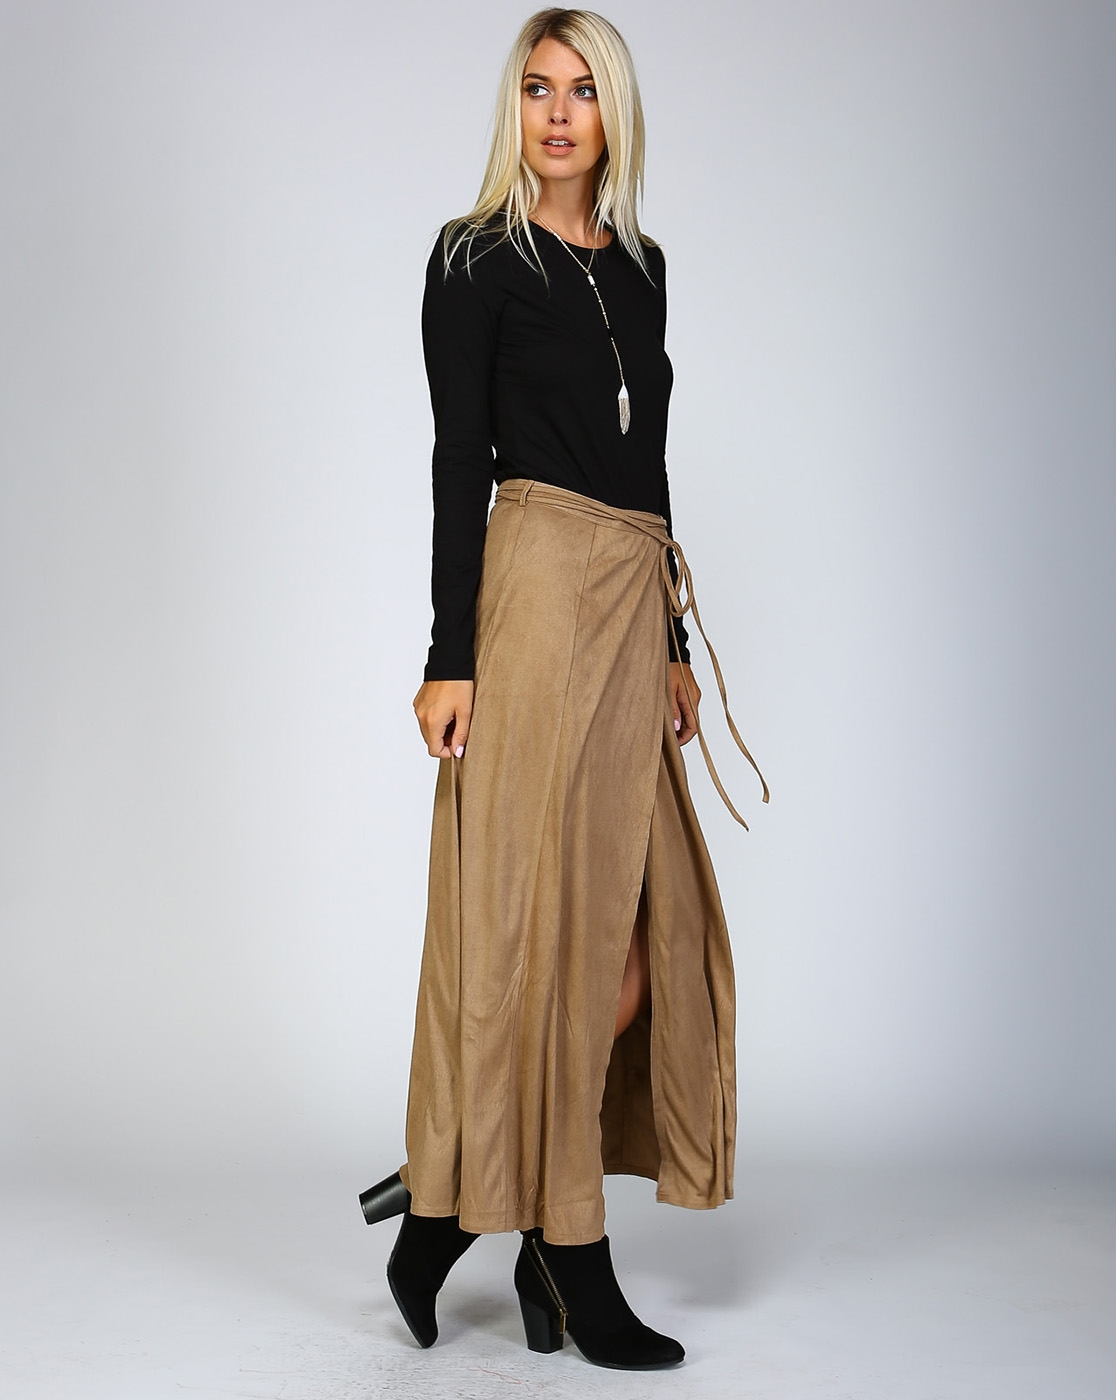 SUEDE SPLIT SKIRT - orangeshine.com